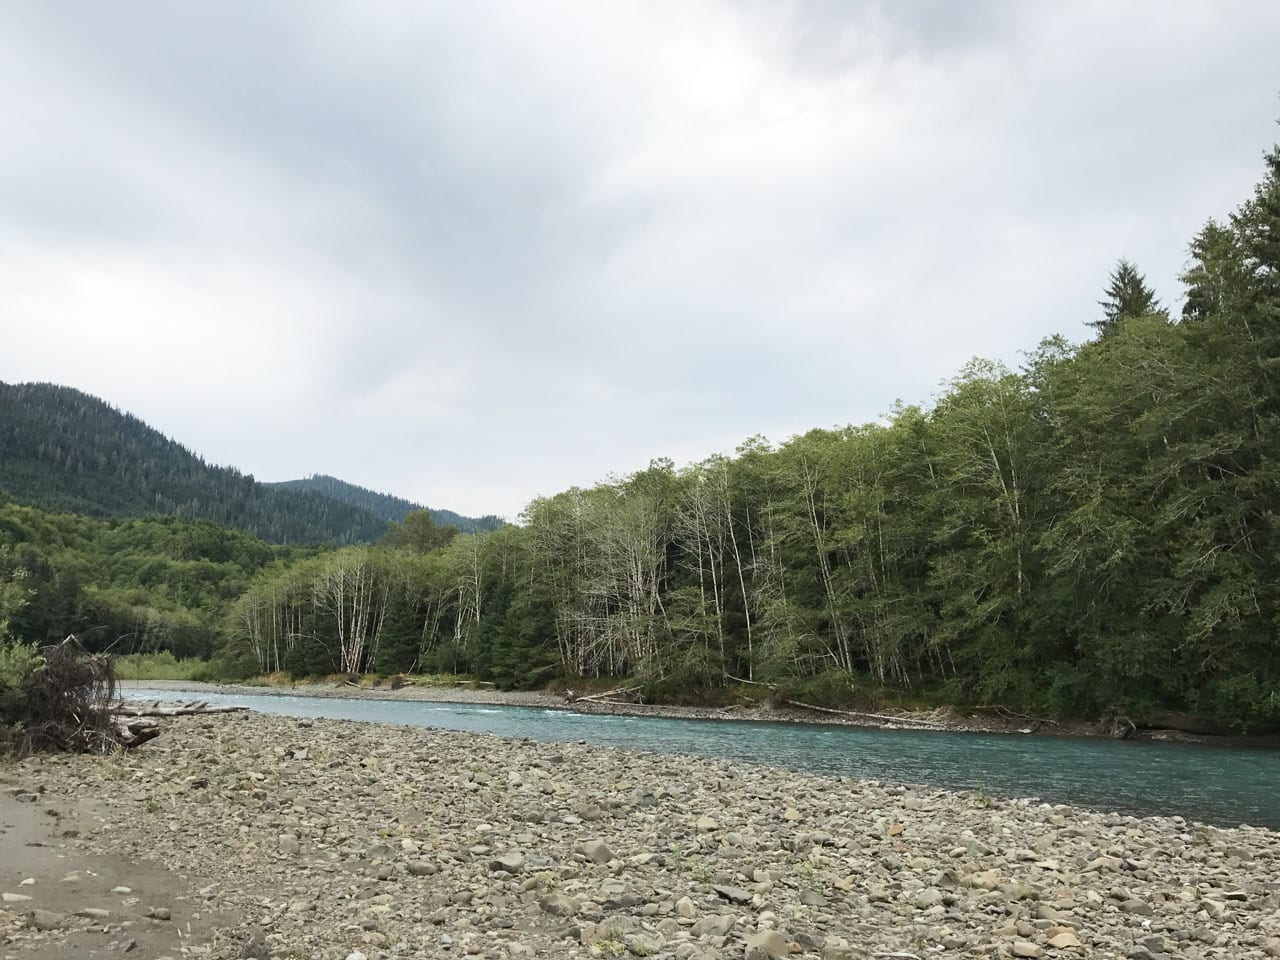 UR FAVORITE CAMPGROUNDS NEAR OLYMPIC NATIONAL PARK